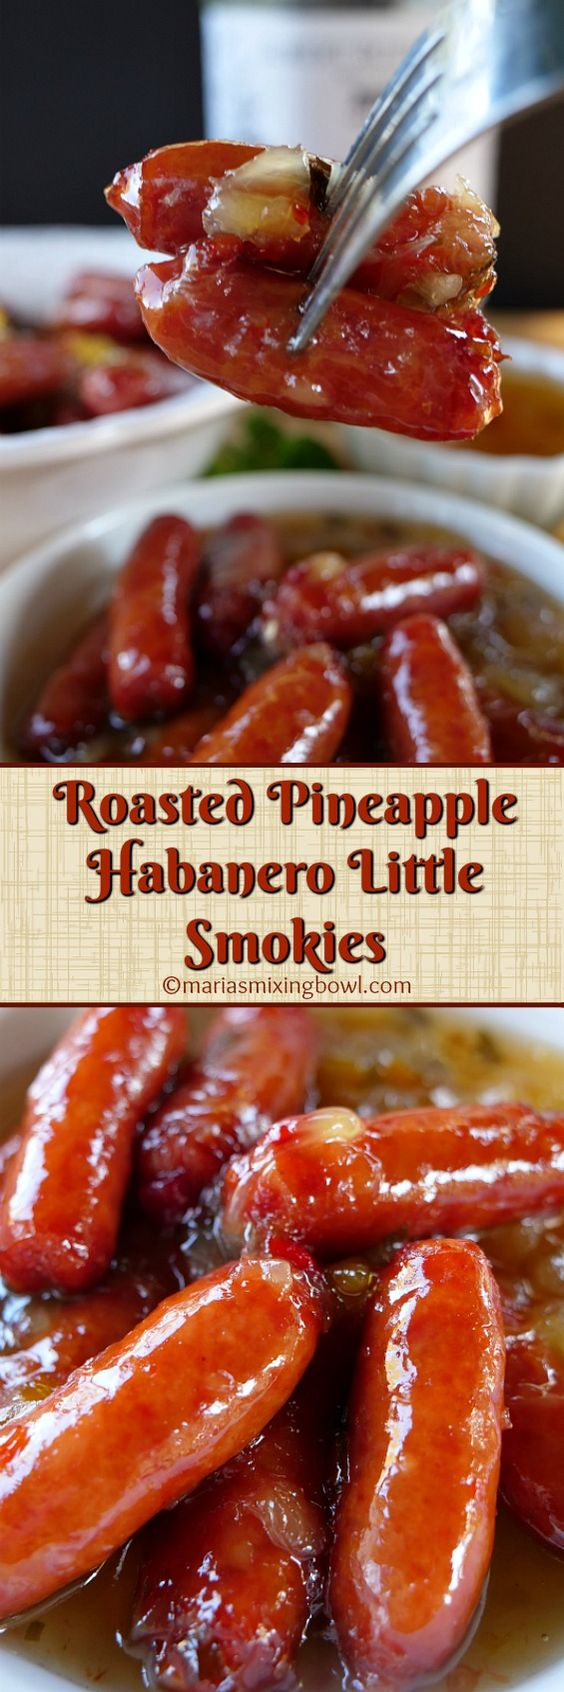 Roasted Pineapple Habanero Little Smokies are the bomb! Make these treats for your next party or game day get together! They are always a huge hit and almost always the first to go. The best part is they are so easy to make!